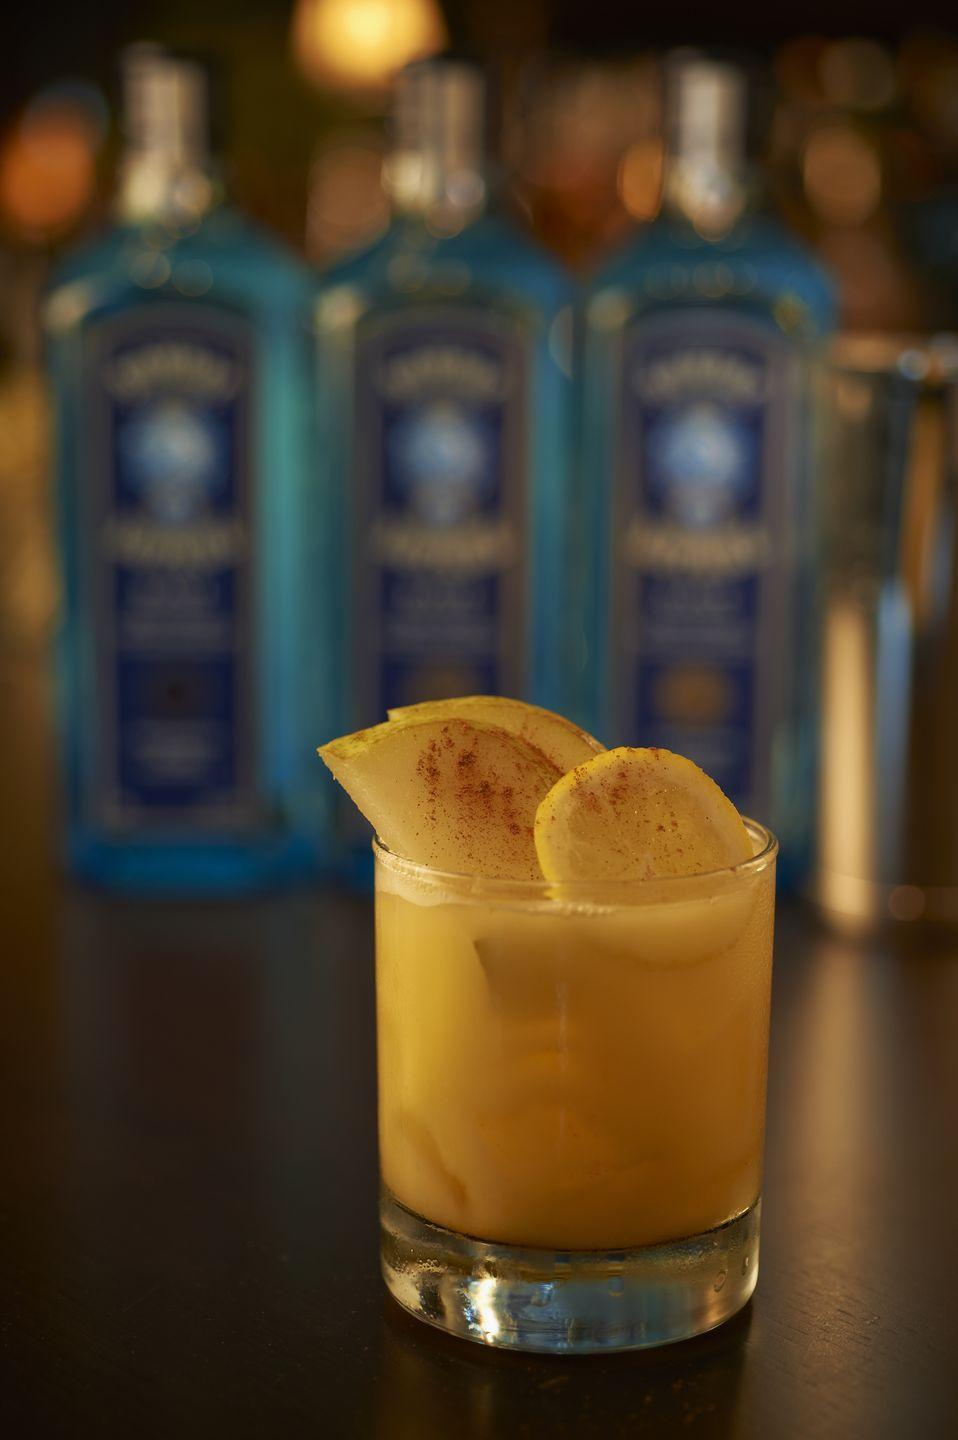 "<p><strong>Ingredients</strong></p><p>2 parts Bombay Sapphire East gin<br>.75 part pumpkin puree<br>.5 part Xanté pear brandy liqueur<br>.5 part simple syrup<br>.75 part lemon juice<br>.5 part egg white</p><p><strong>Instructions</strong></p><p>Combine all ingredients in a shaker tin with ice. Shake hard and serve up or down in a glass rinsed with Dewars 12.</p><p><a class=""link rapid-noclick-resp"" href=""https://go.redirectingat.com?id=74968X1596630&url=https%3A%2F%2Fdrizly.com%2Fbombay-sapphire-east%2Fp8532%3Fis_autocomplete%3Dtrue&sref=https%3A%2F%2Fwww.townandcountrymag.com%2Fleisure%2Fdrinks%2Fg2839%2Fhalloween-drinks%2F"" rel=""nofollow noopener"" target=""_blank"" data-ylk=""slk:Buy Now"">Buy Now</a> Bombay Sapphire East gin, from $15.99</p><p><a class=""link rapid-noclick-resp"" href=""https://go.redirectingat.com?id=74968X1596630&url=https%3A%2F%2Fdrizly.com%2Fxante-pear-liqueur%2Fp5397&sref=https%3A%2F%2Fwww.townandcountrymag.com%2Fleisure%2Fdrinks%2Fg2839%2Fhalloween-drinks%2F"" rel=""nofollow noopener"" target=""_blank"" data-ylk=""slk:Buy Now"">Buy Now</a> Xanté pear brandy liqueur, from $16.99<br></p>"